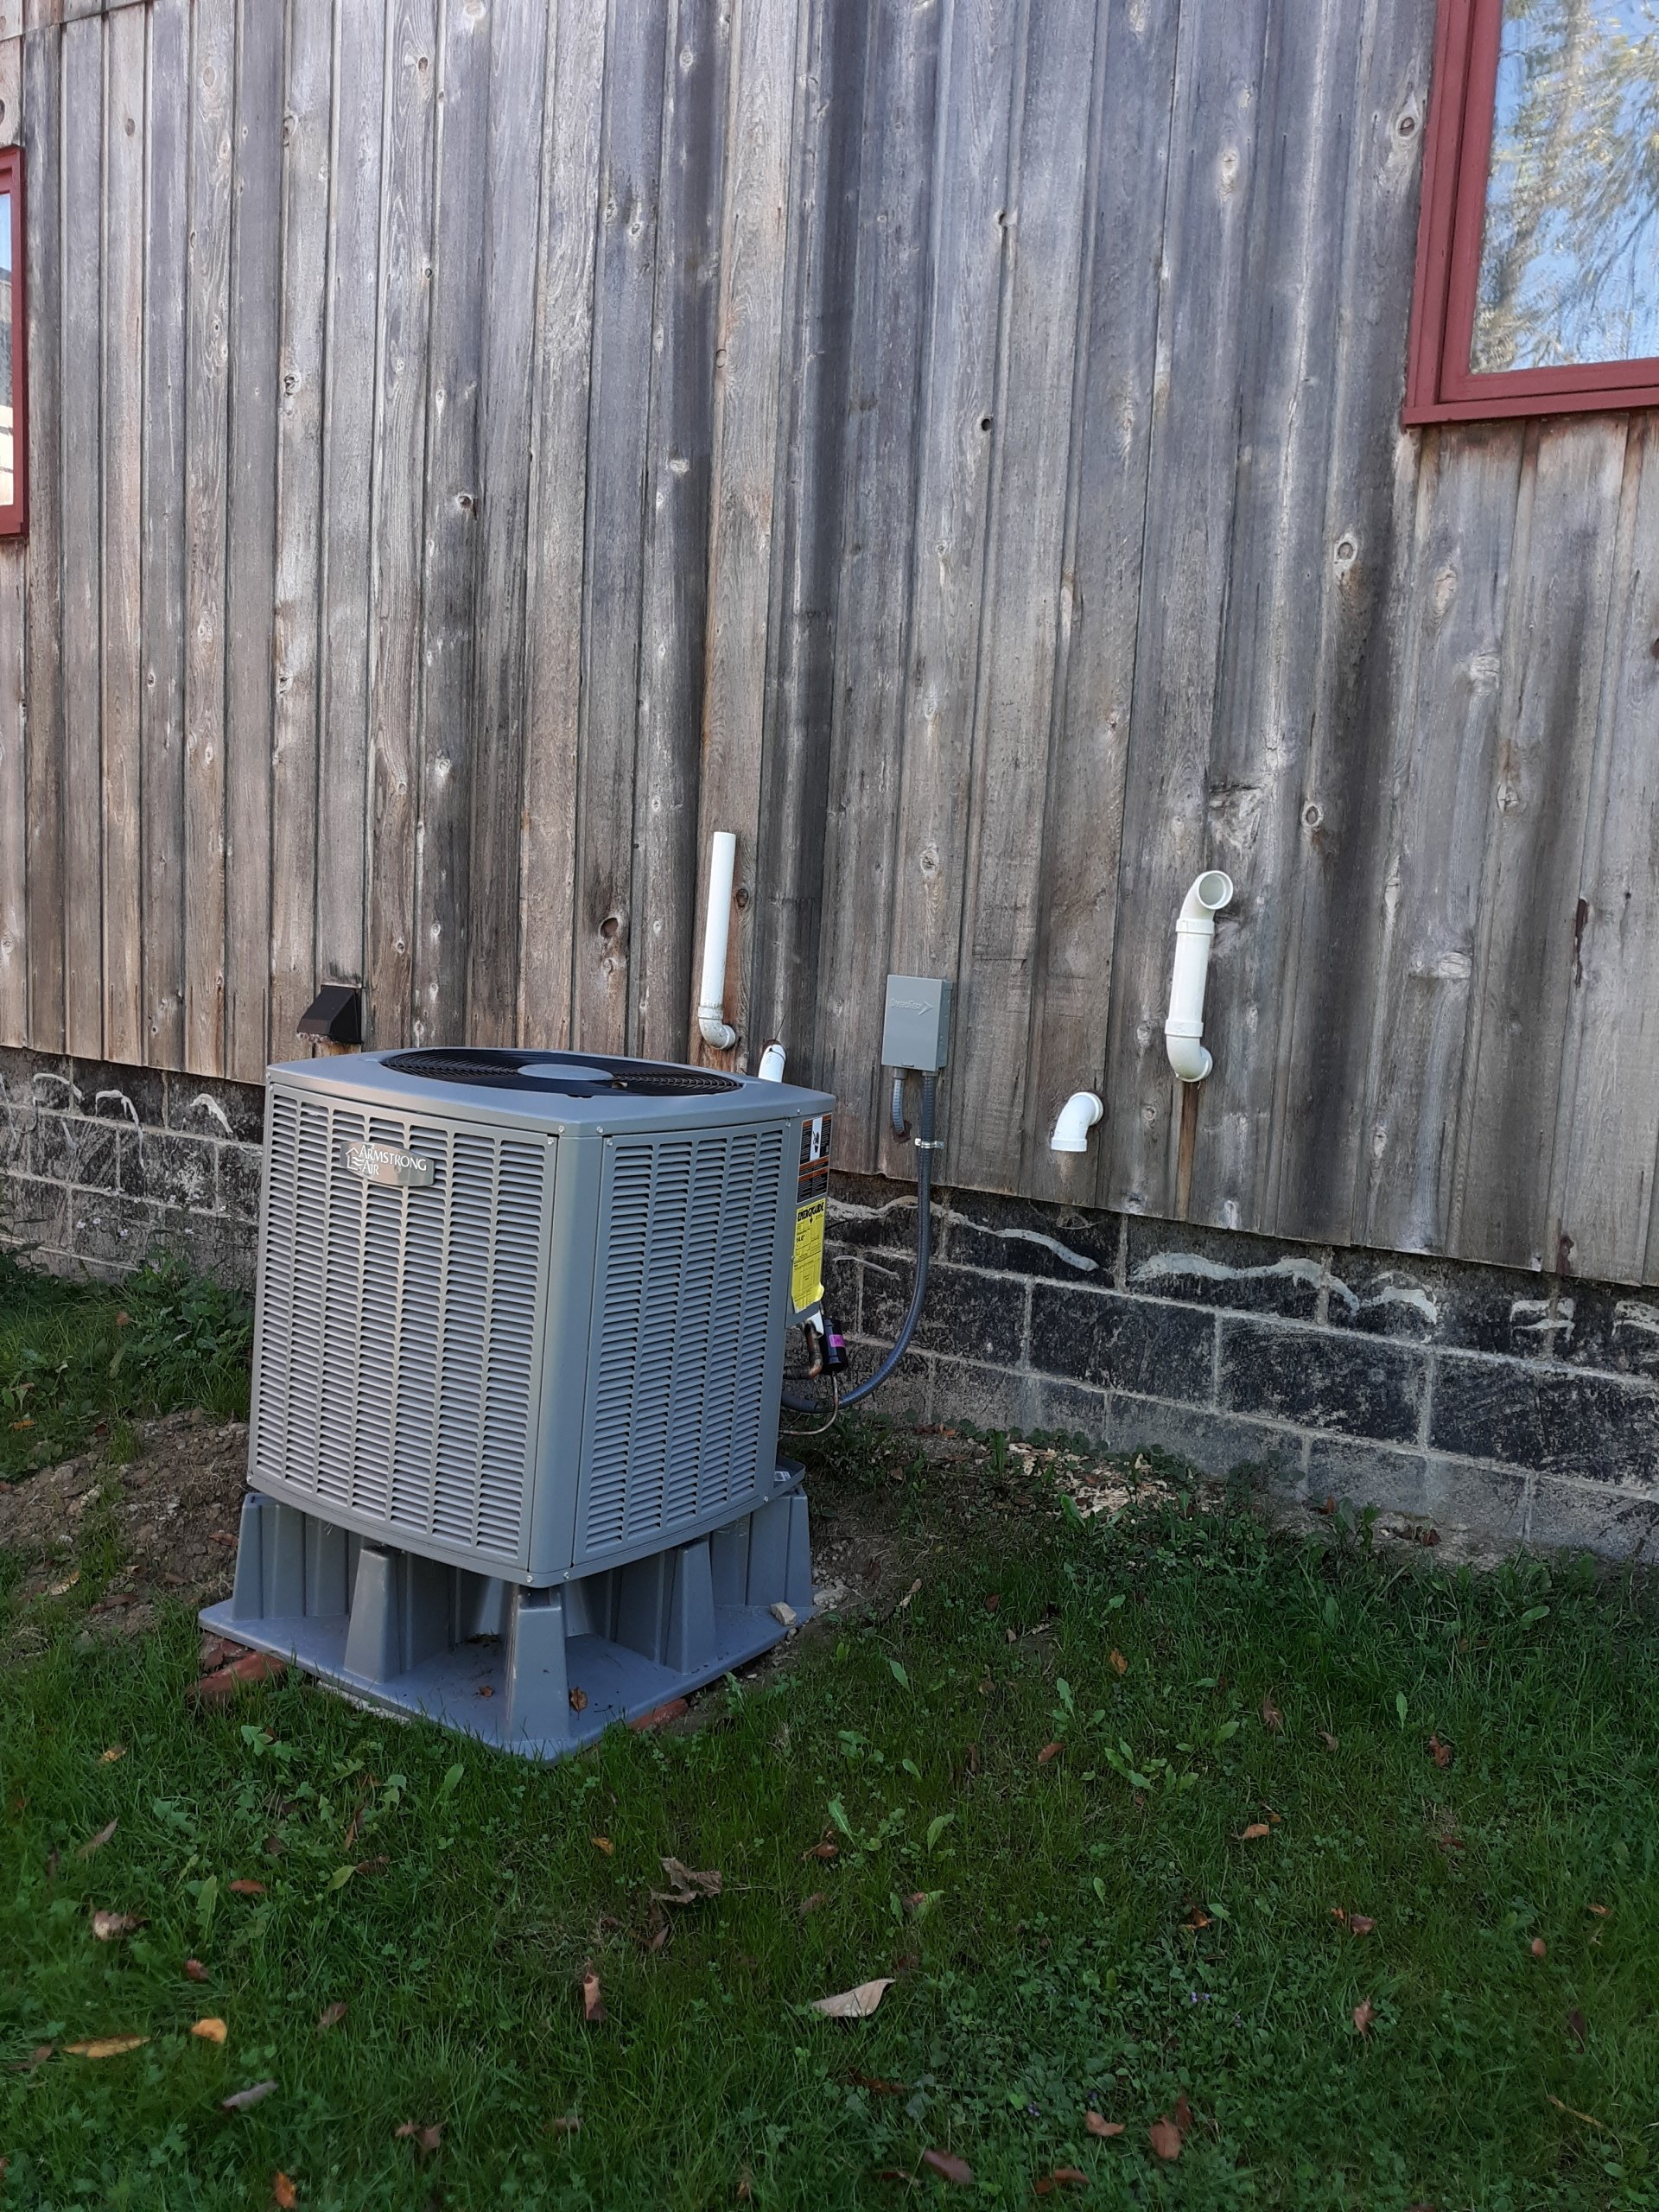 September, 2019 — Titusville, PA., Fujitsu Mini-Split System, Armstrong Furnace 95% EFF, and Armstrong Air Conditioner 3-ton.